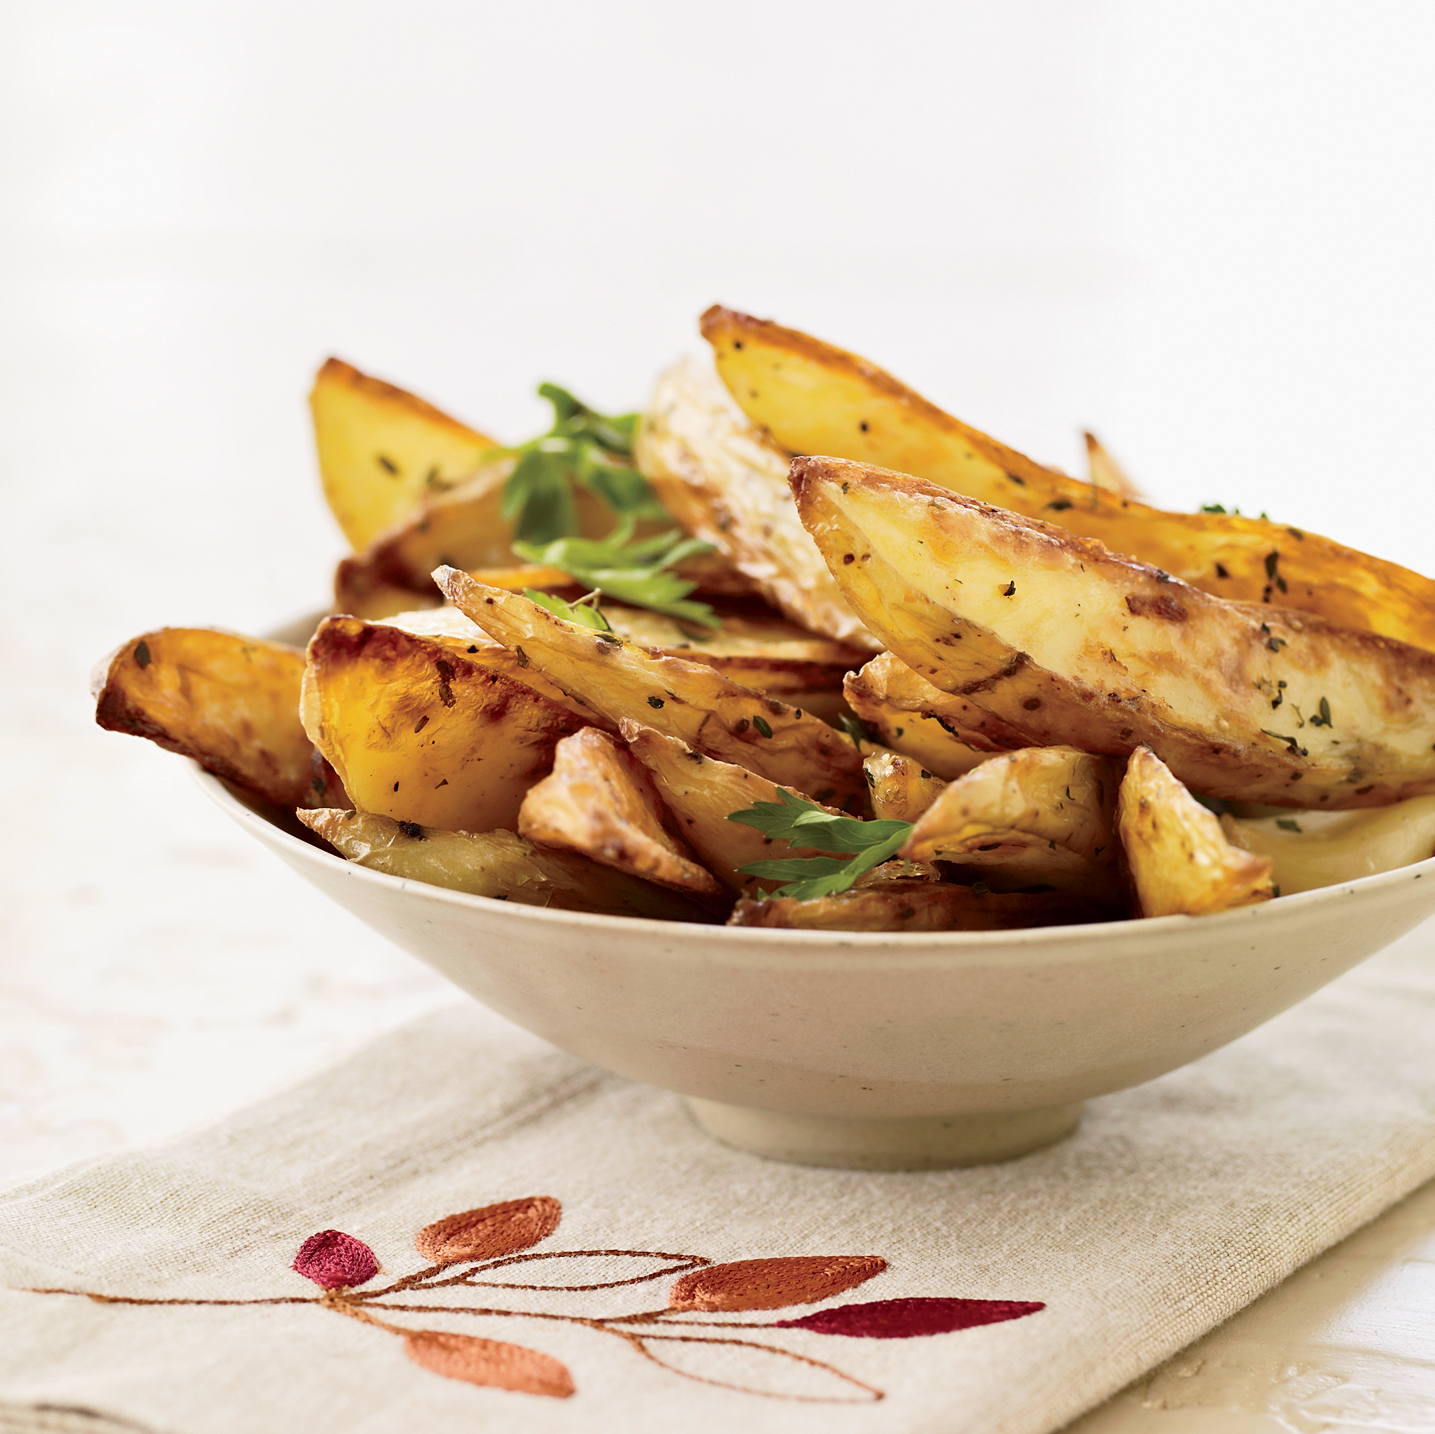 Oven Fries with Roasted Garlic Recipe - Jan Birnbaum | Food & Wine